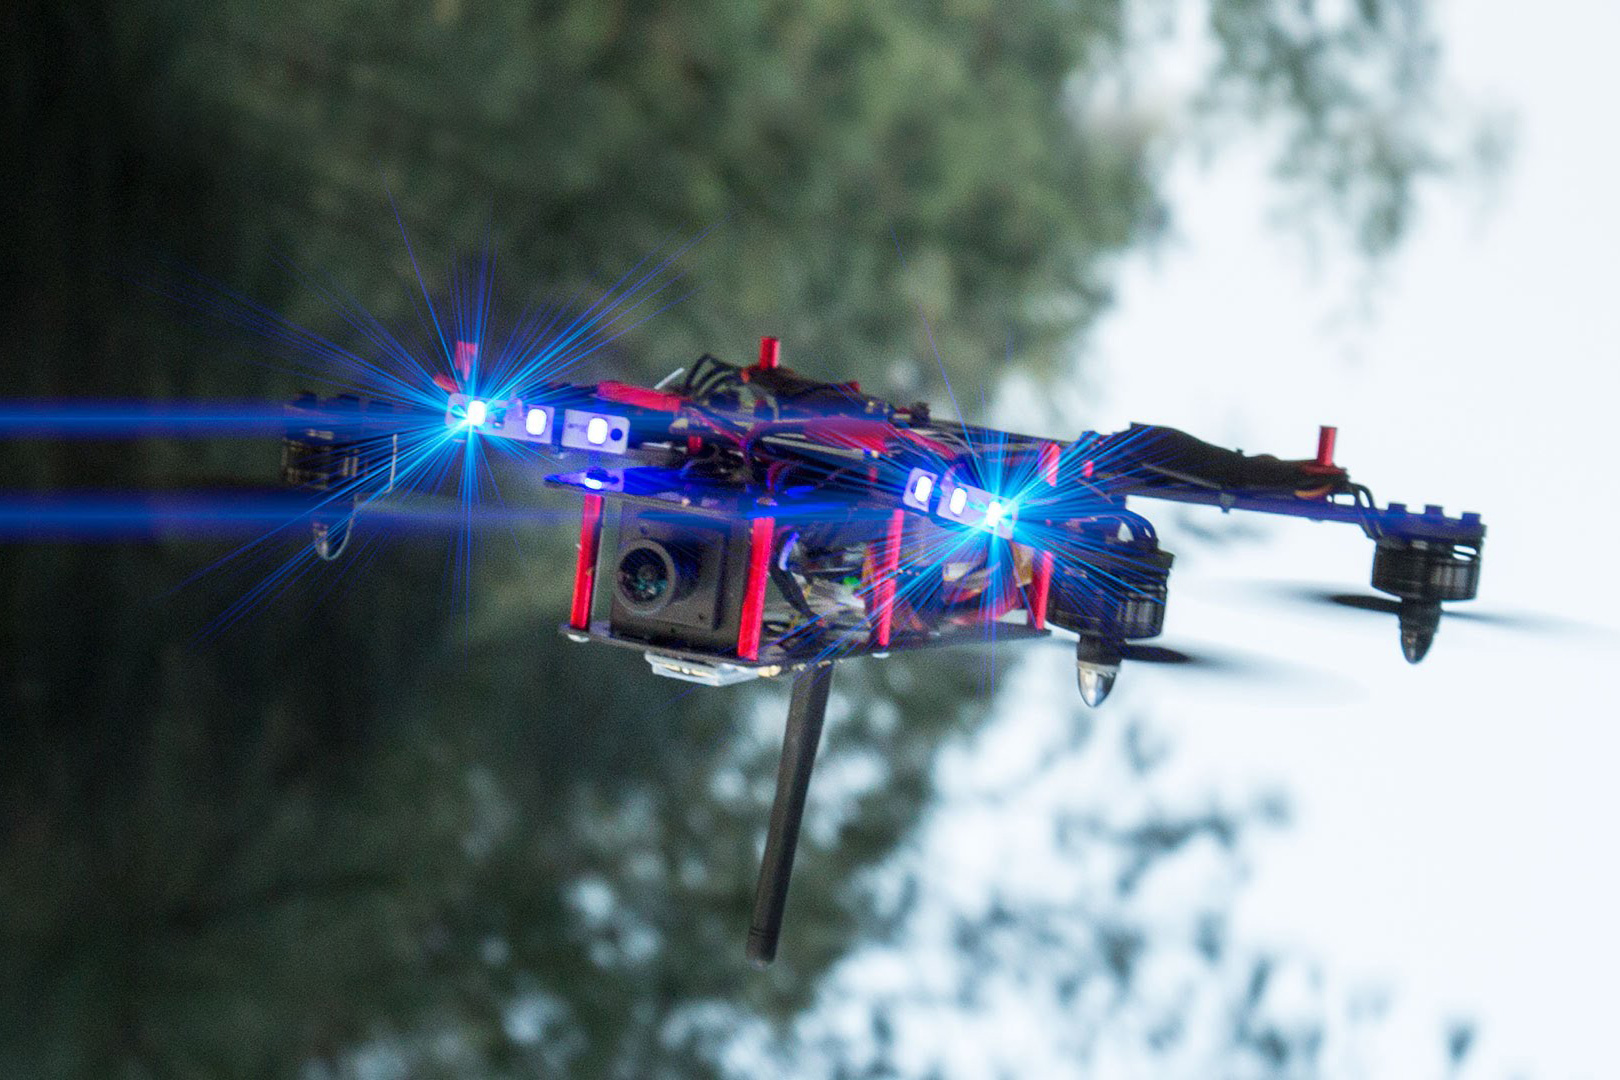 ESPN Gives Drone Racing Its Stamp of Approval